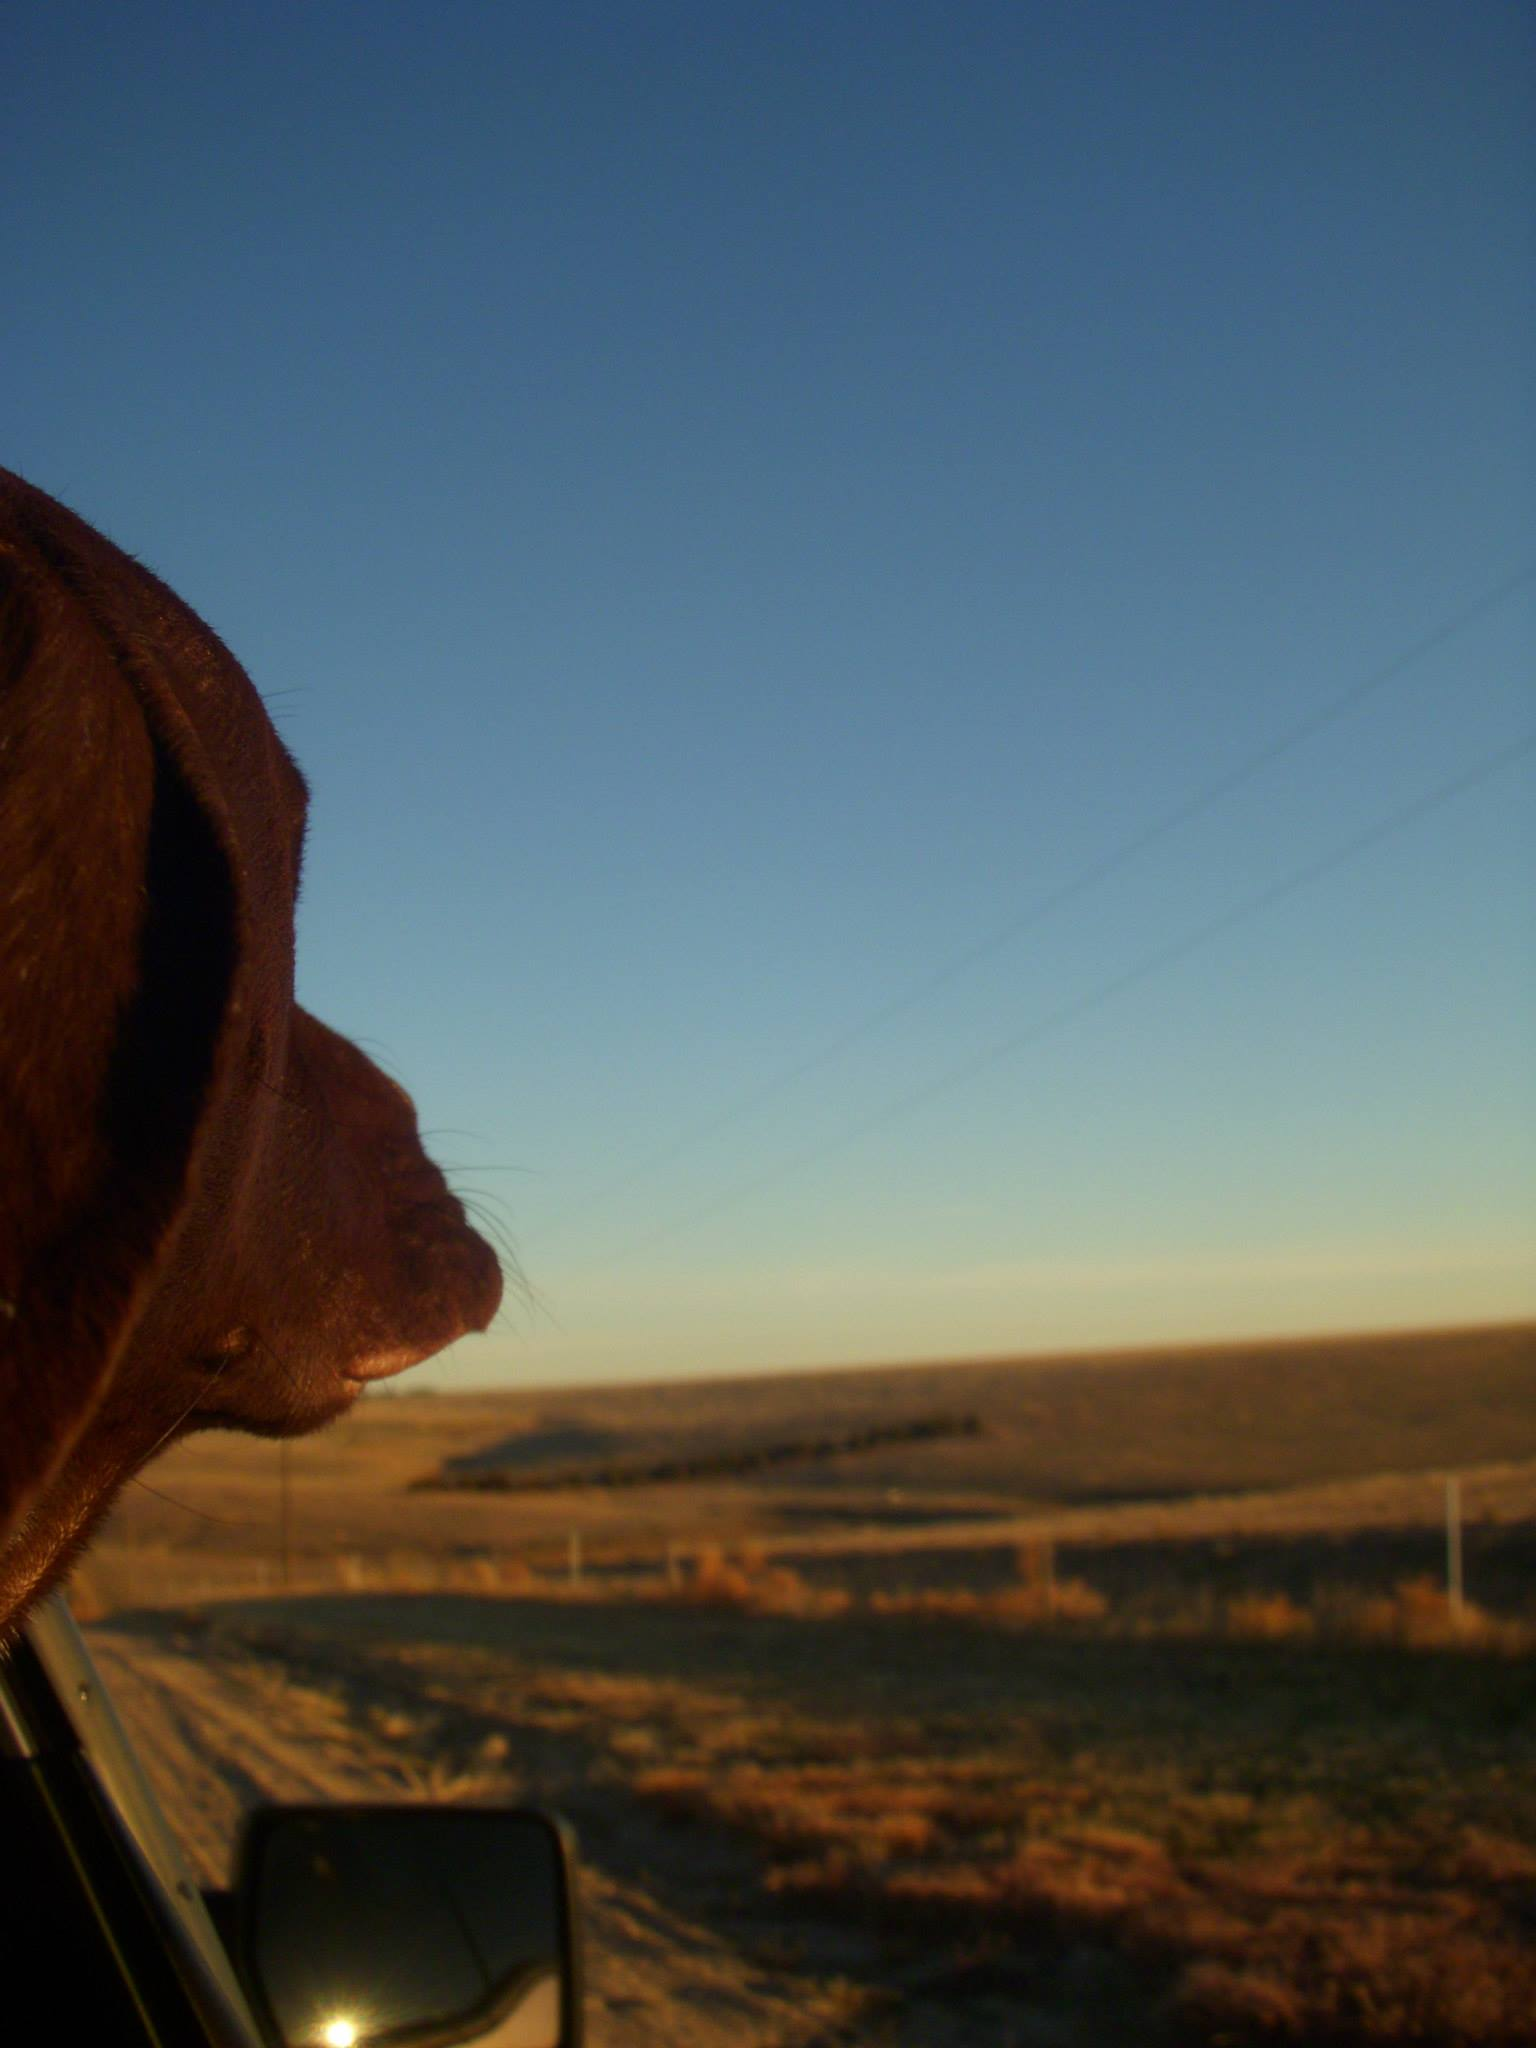 Remi's first KS pheasant hunt. Photo credit: Michelle Haines